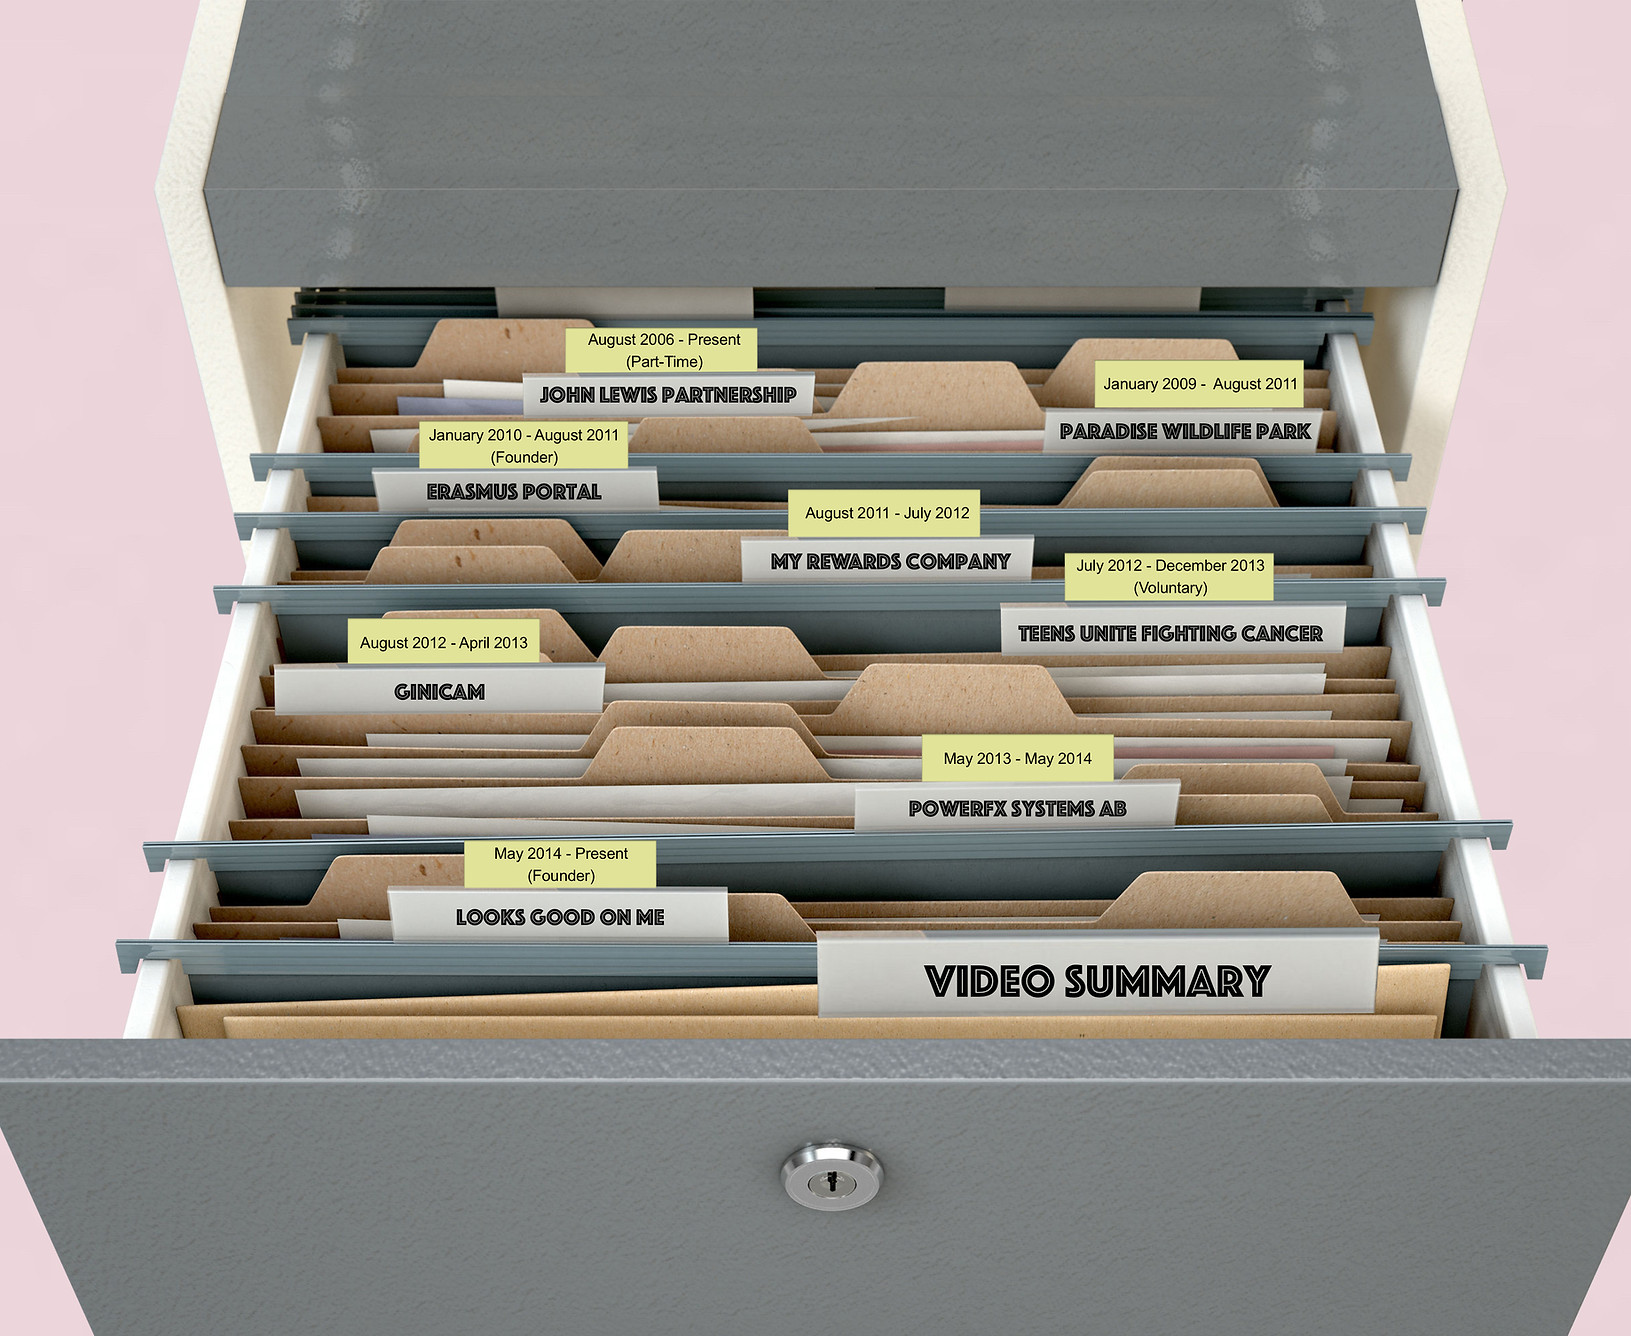 Background image of filing cabinet with work history